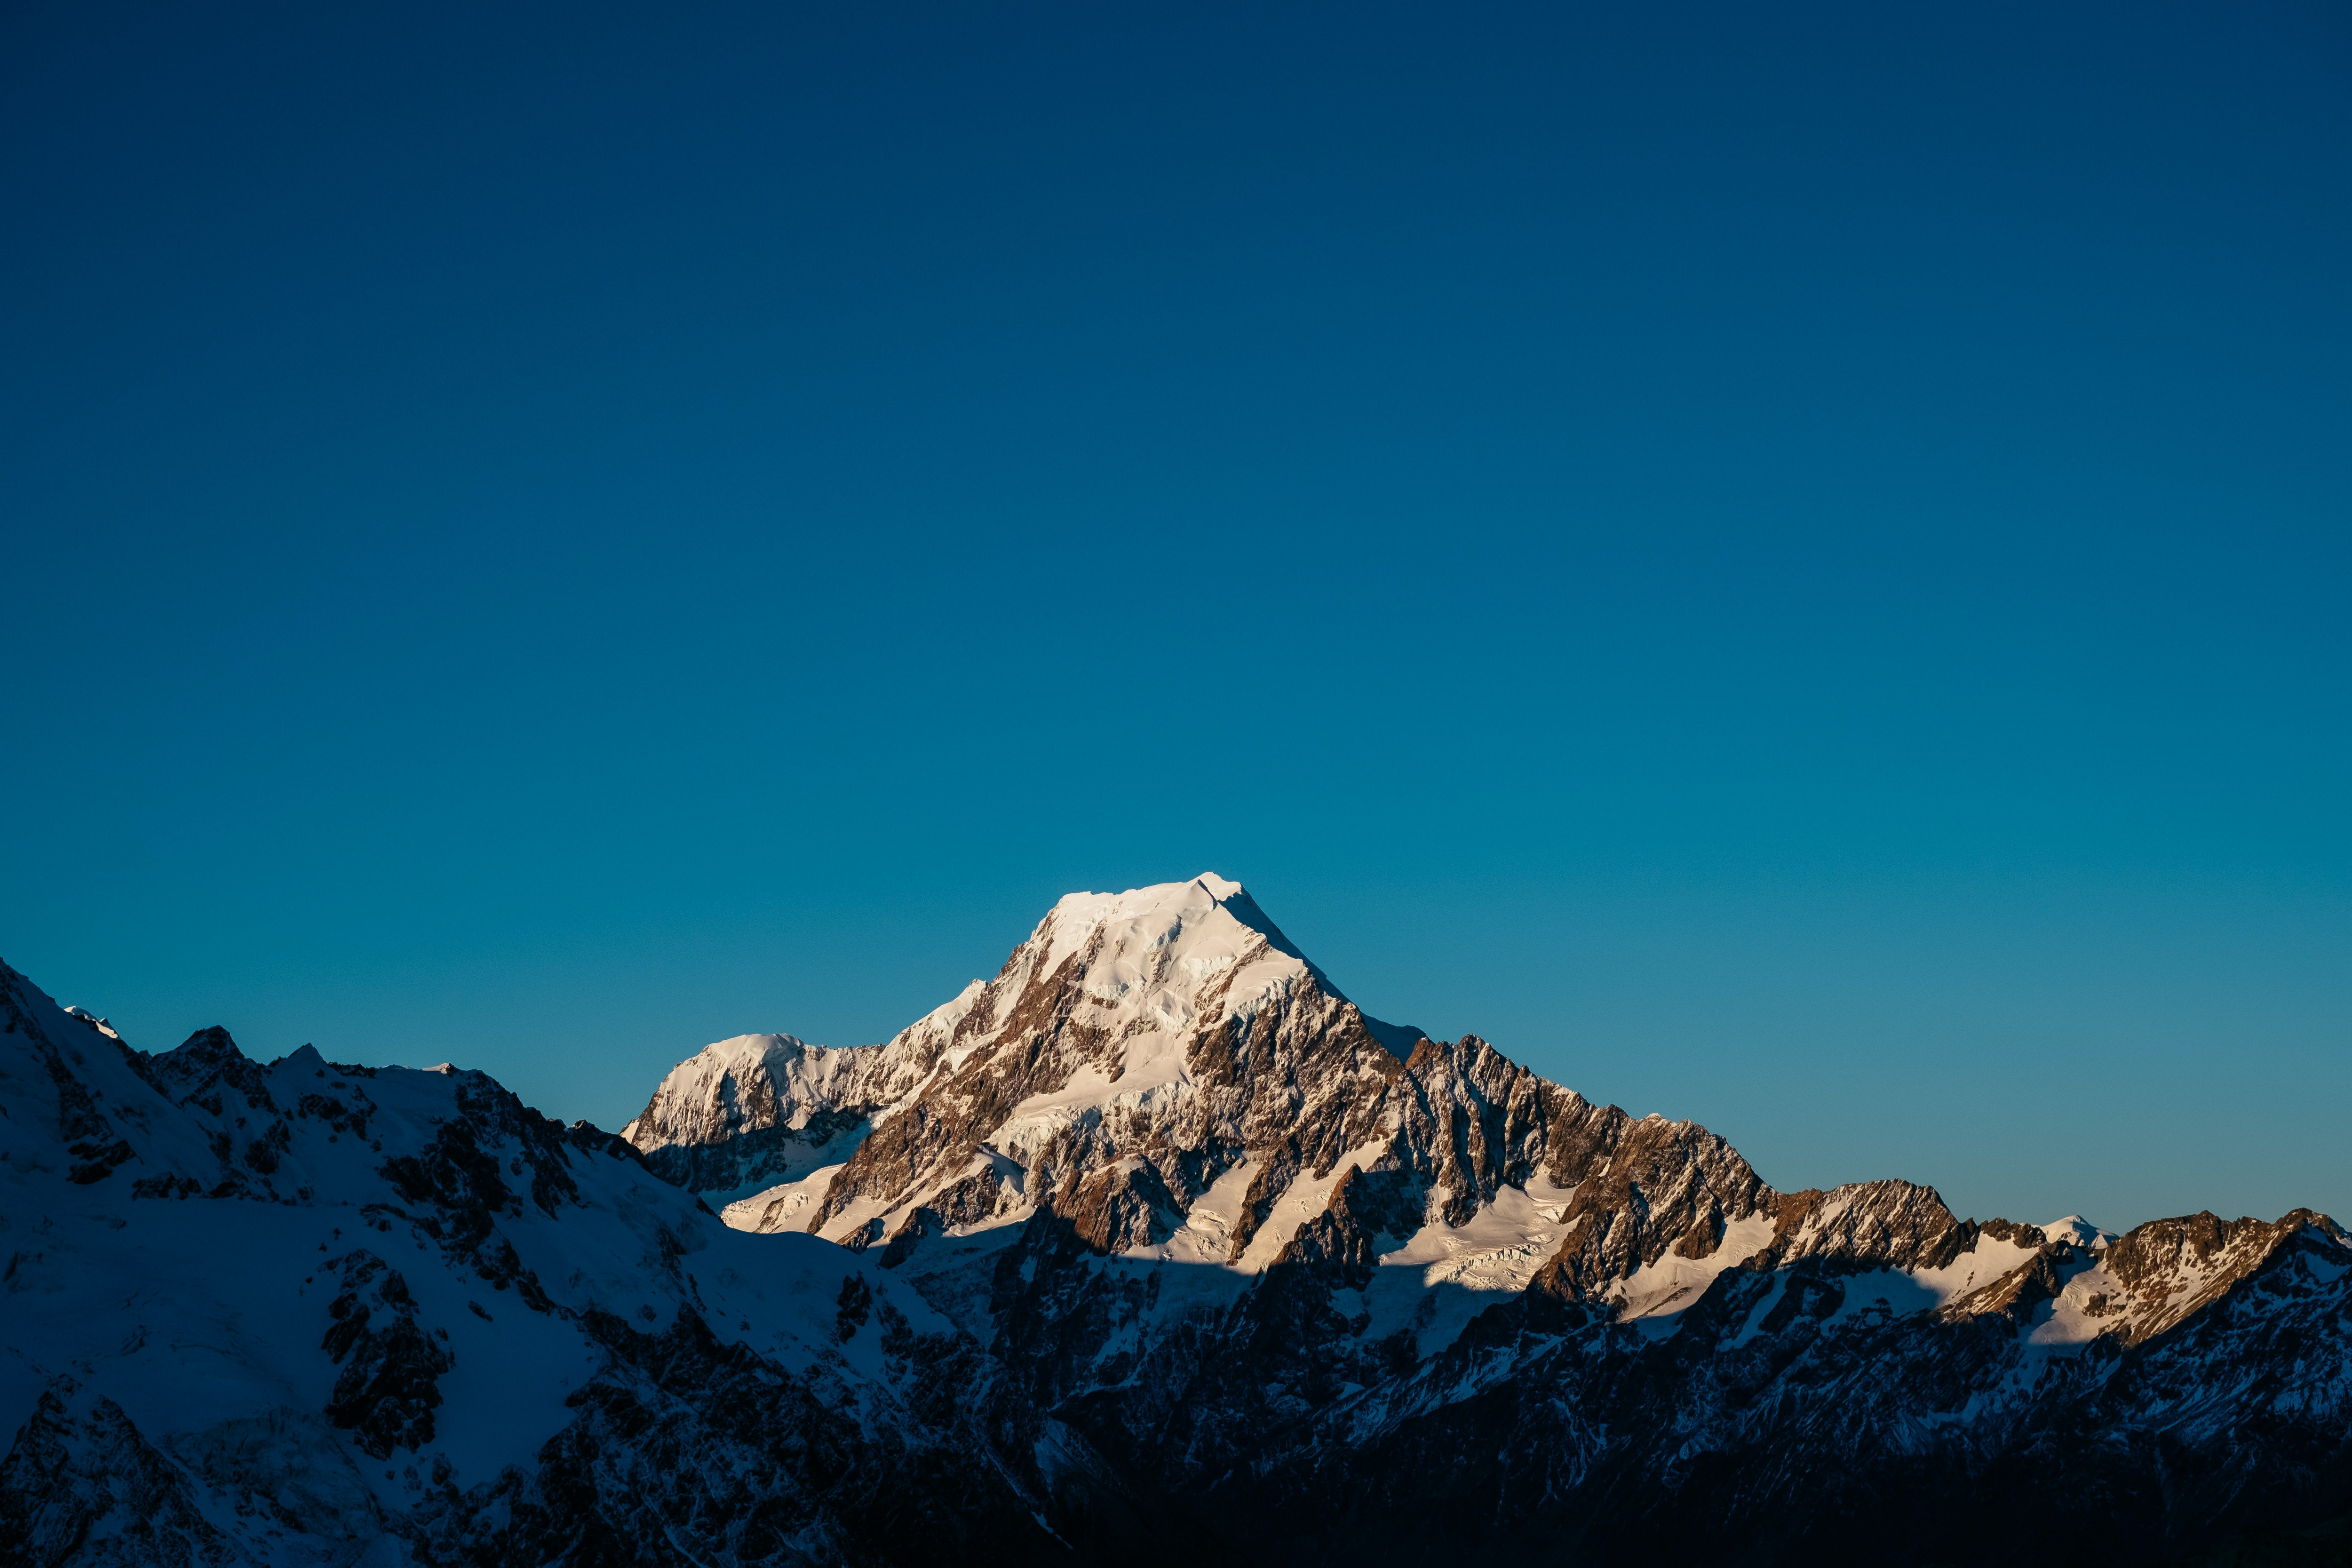 The tall Mount Cook silhouetted against a blue sky